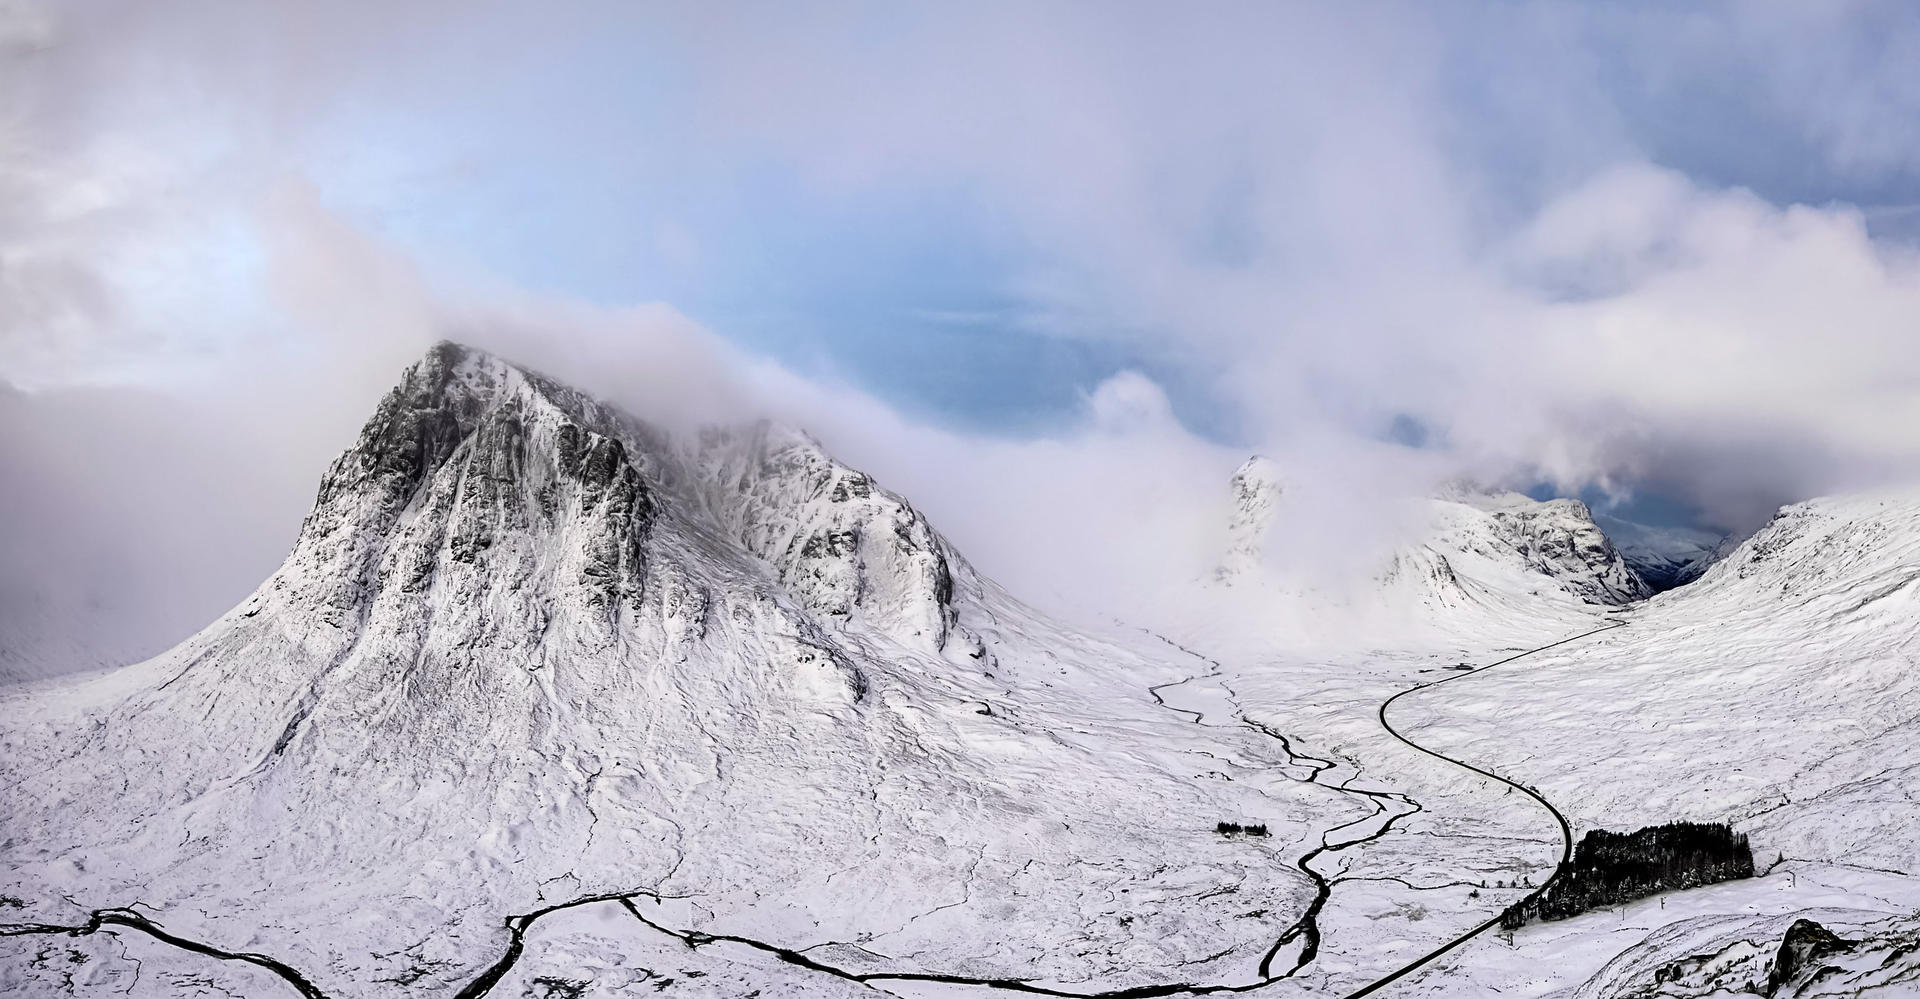 mountains of Glencoe scotland covered in snow